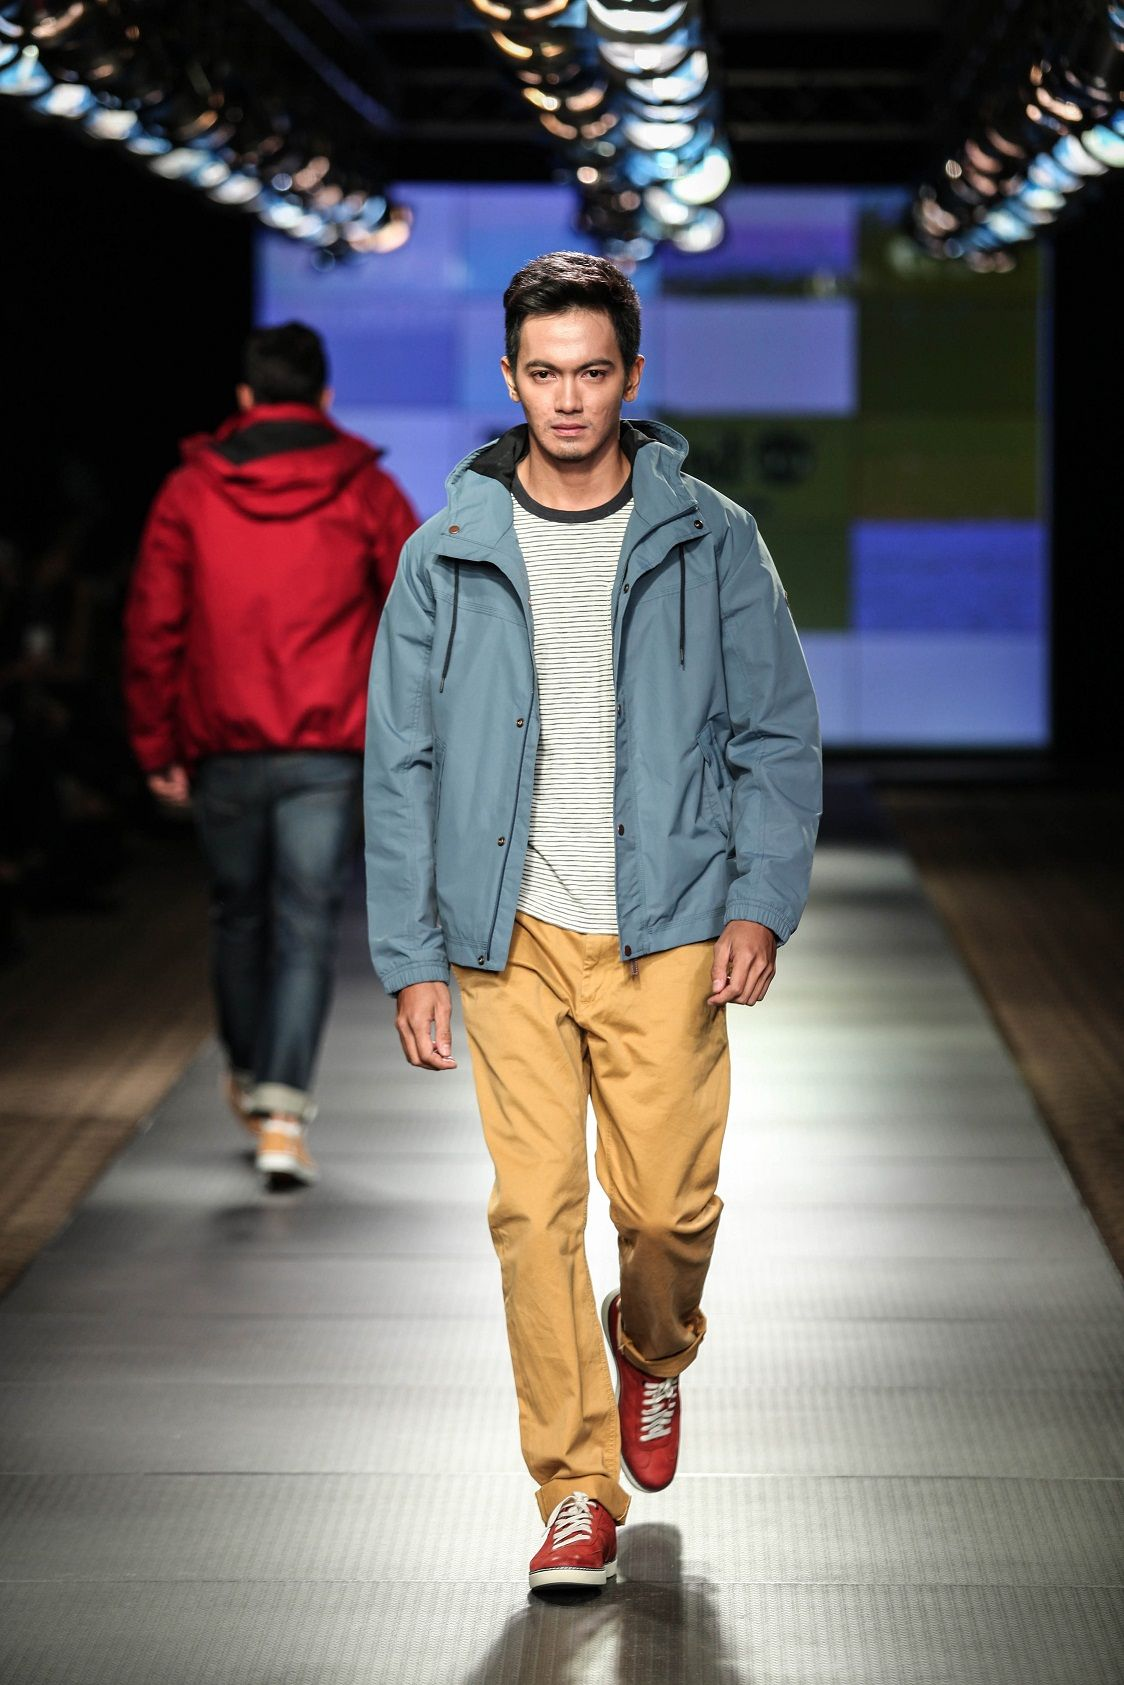 Timberland Plaza Indonesia Men's Fashion Week | Timberland ... Indonesian Men